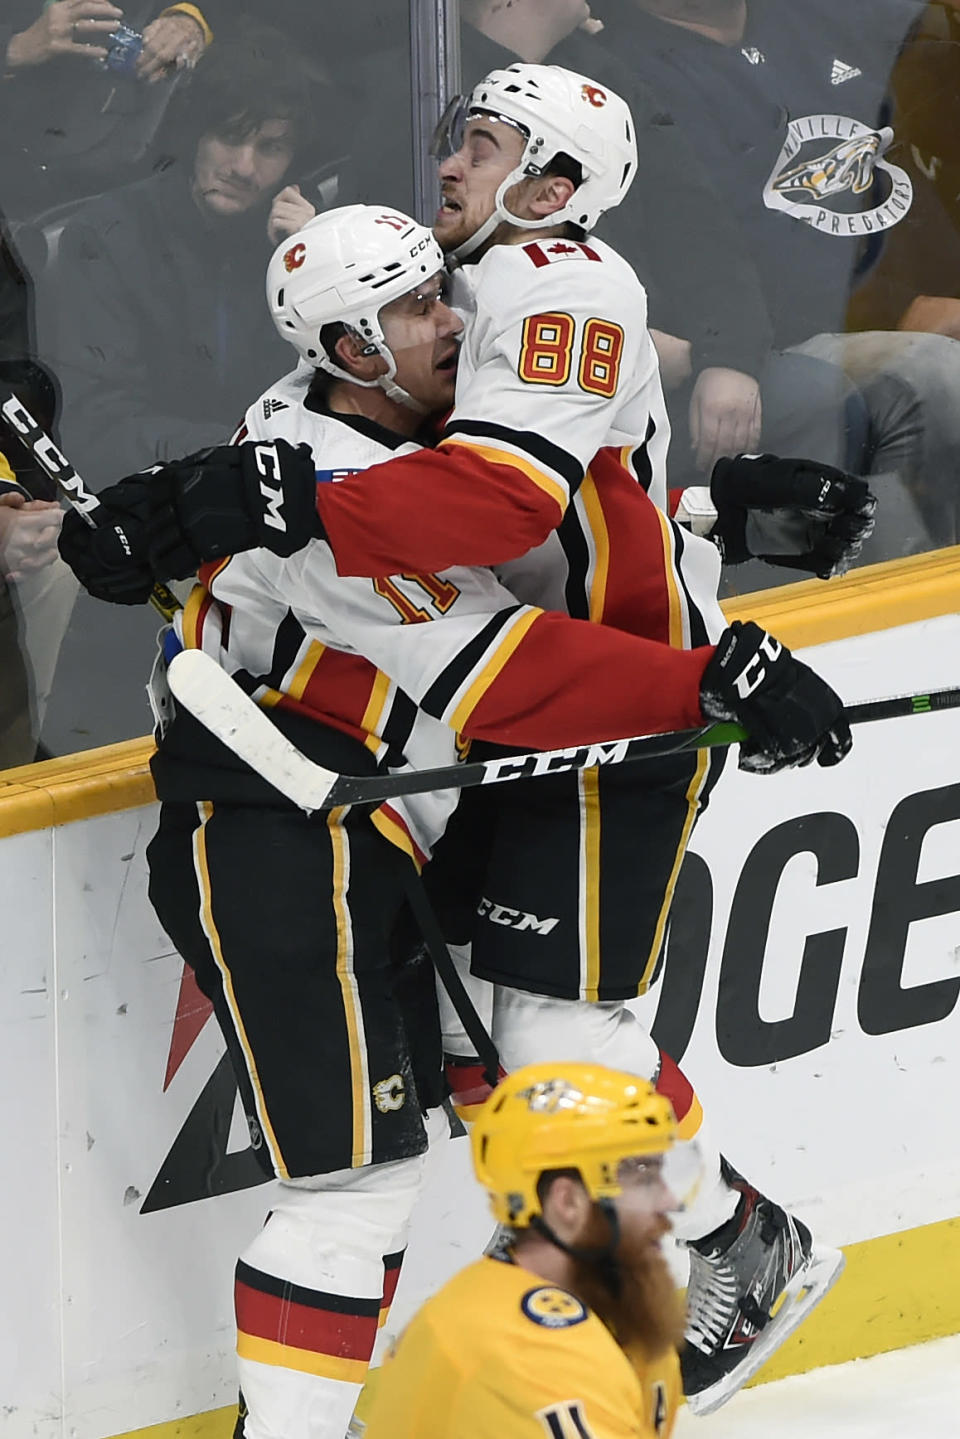 Calgary Flames left wing Andrew Mangiapane (88) celebrates with center Mikael Backlund (11), of Sweden, after scoring the go-ahead goal in the third period of an NHL hockey game against the Nashville Predators, Thursday, Feb. 27, 2020, in Nashville, Tenn. (AP Photo/Mark Zaleski)